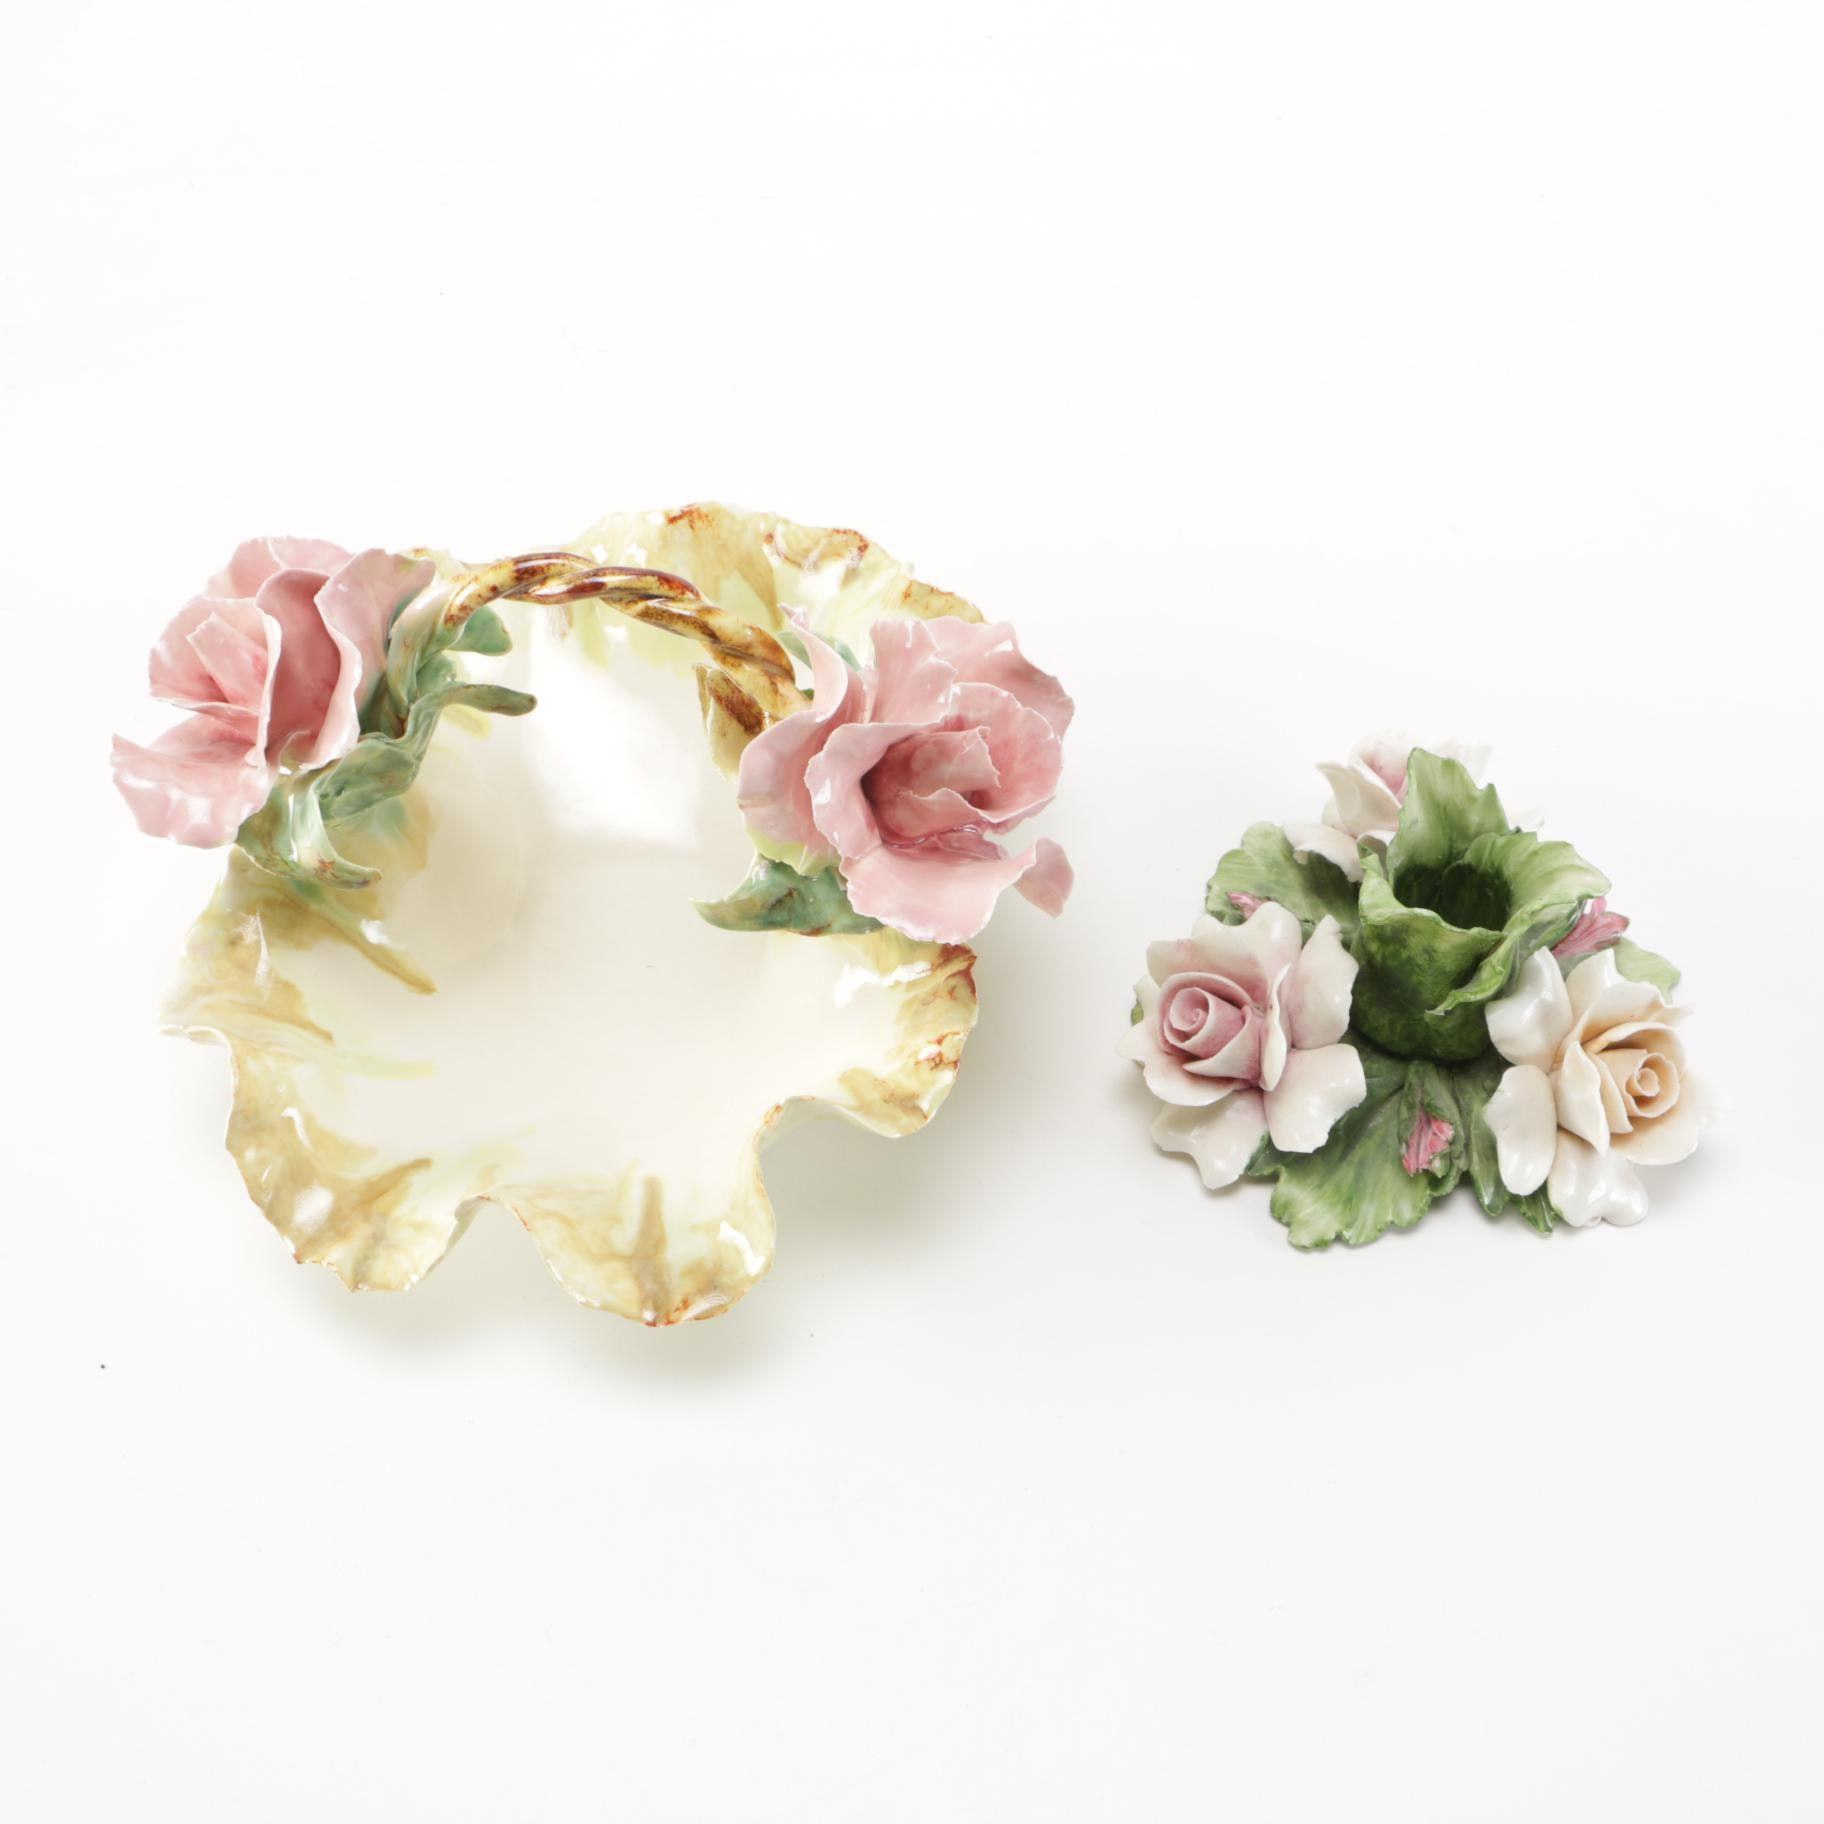 Capodimonte Candle Holder and Porcelain Dish